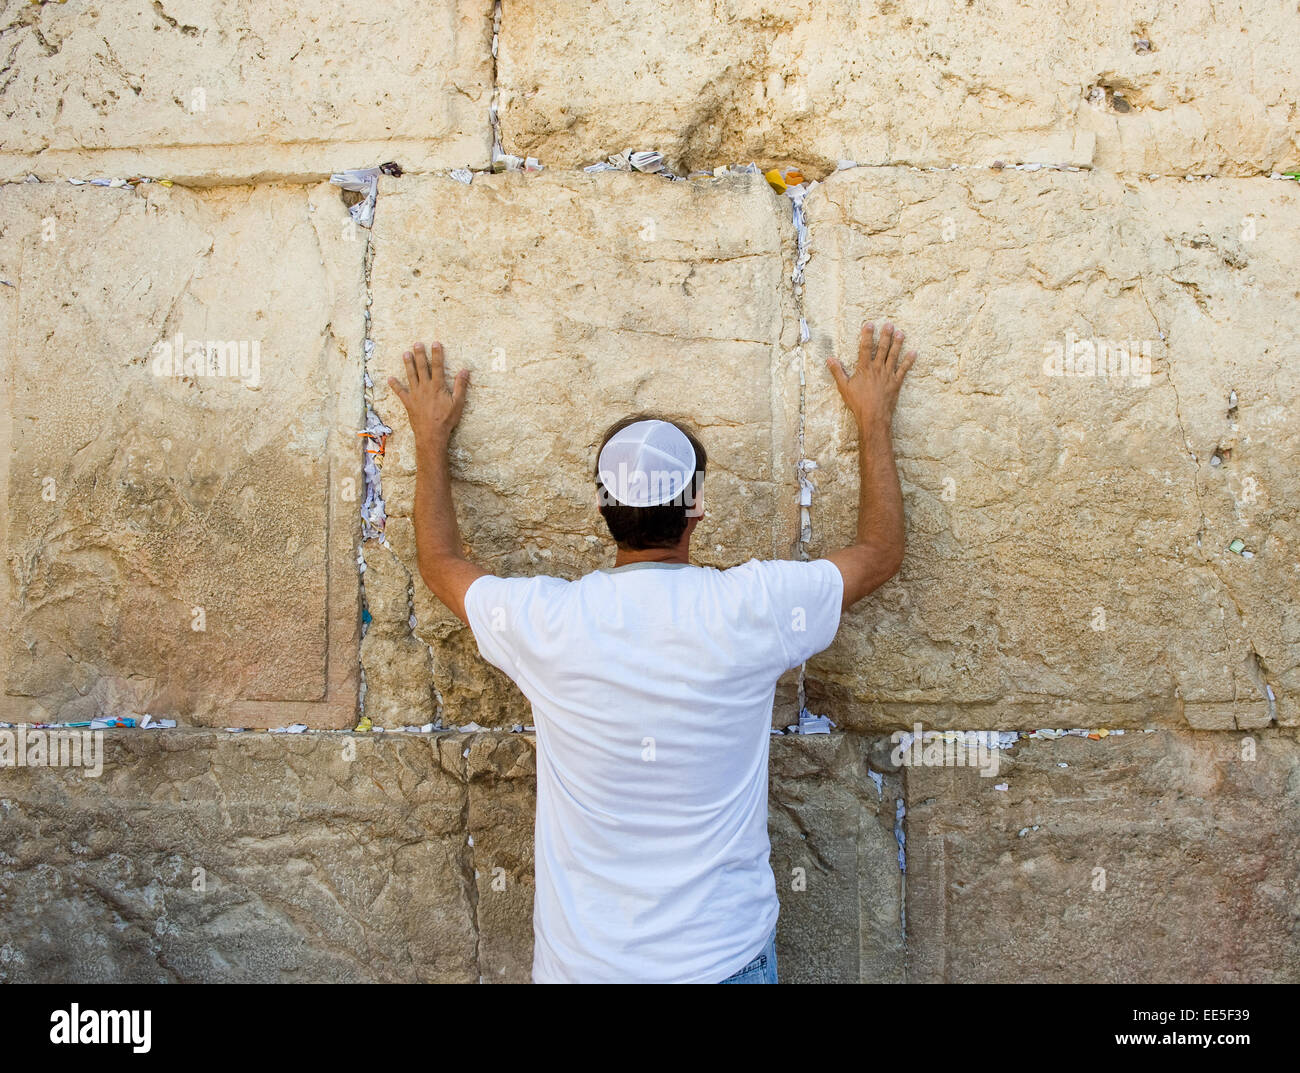 A jewish man is praying against the western wall in the old city of Jerusalem - Stock Image